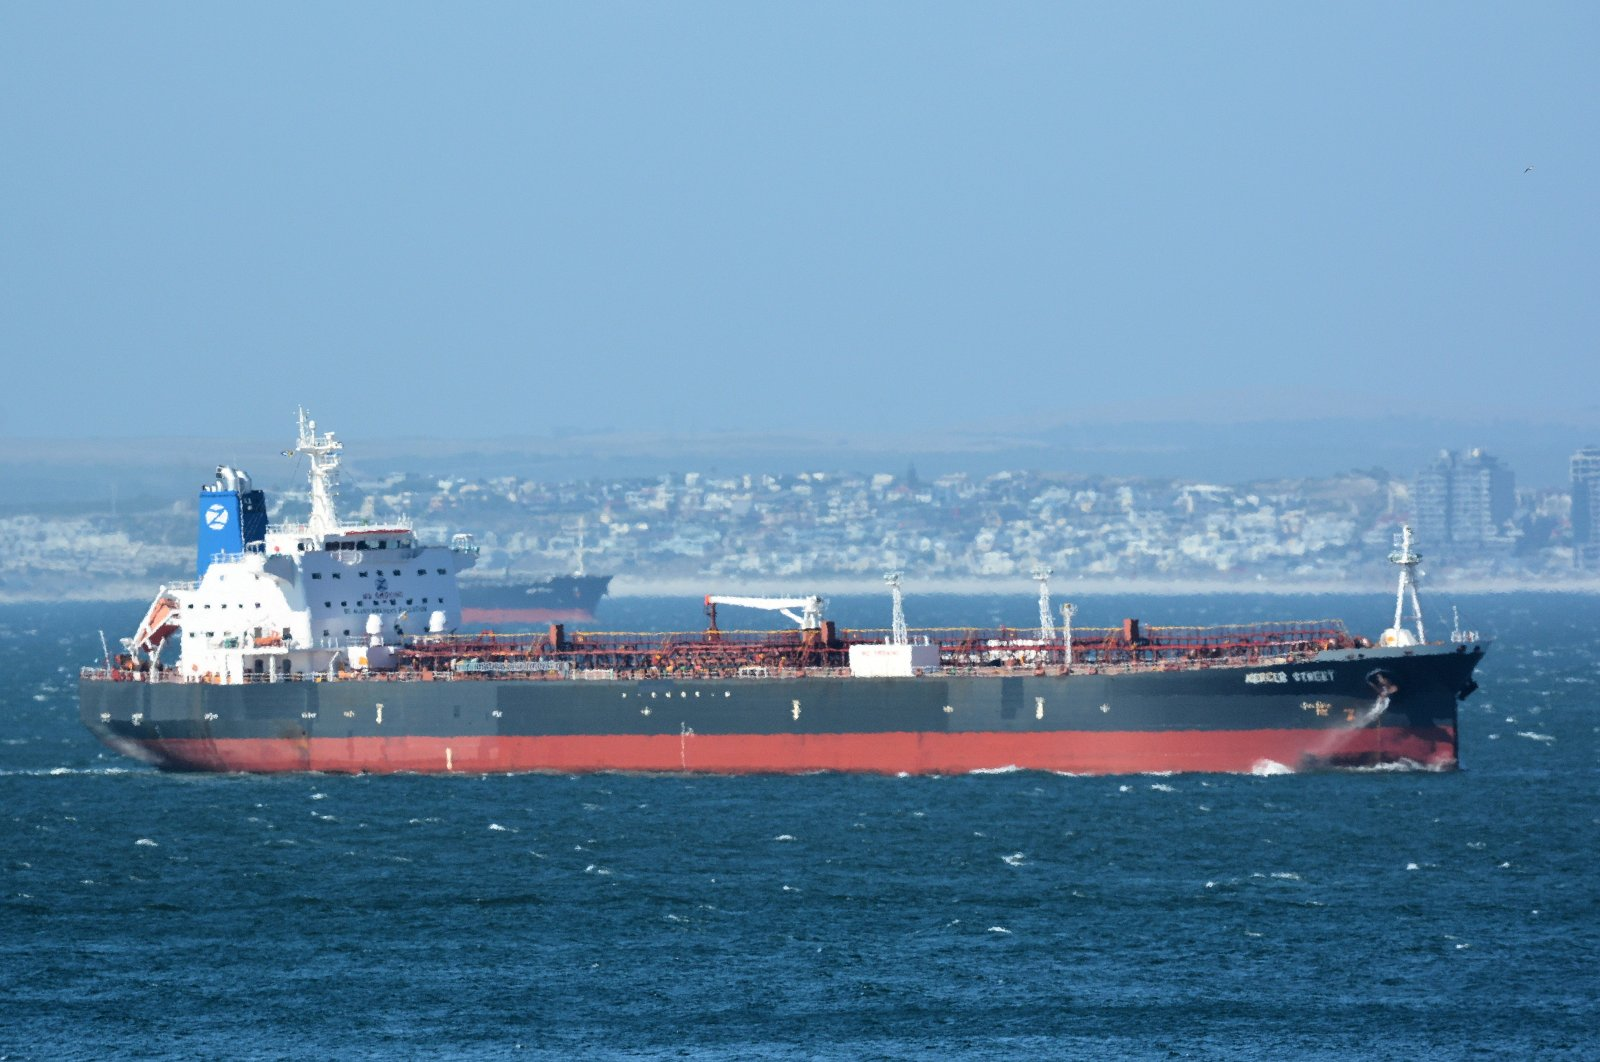 The Mercer Street, a Japanese-owned Liberian-flagged tanker managed by Israeli-owned Zodiac Maritime that was attacked off Oman coast as seen in Cape Town, South Africa, December 31, 2015. (REUTERS Photo)